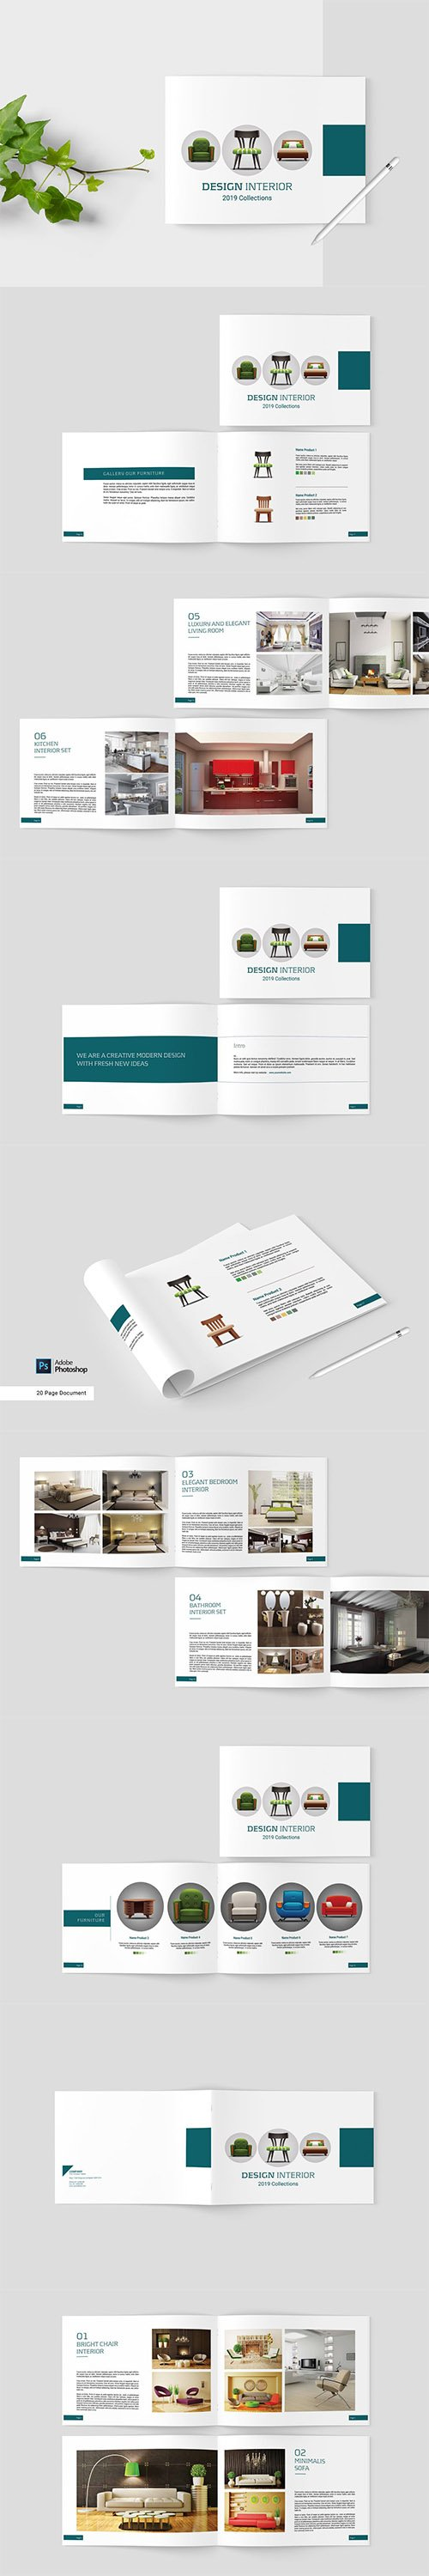 Simple Interior Brochure PSD